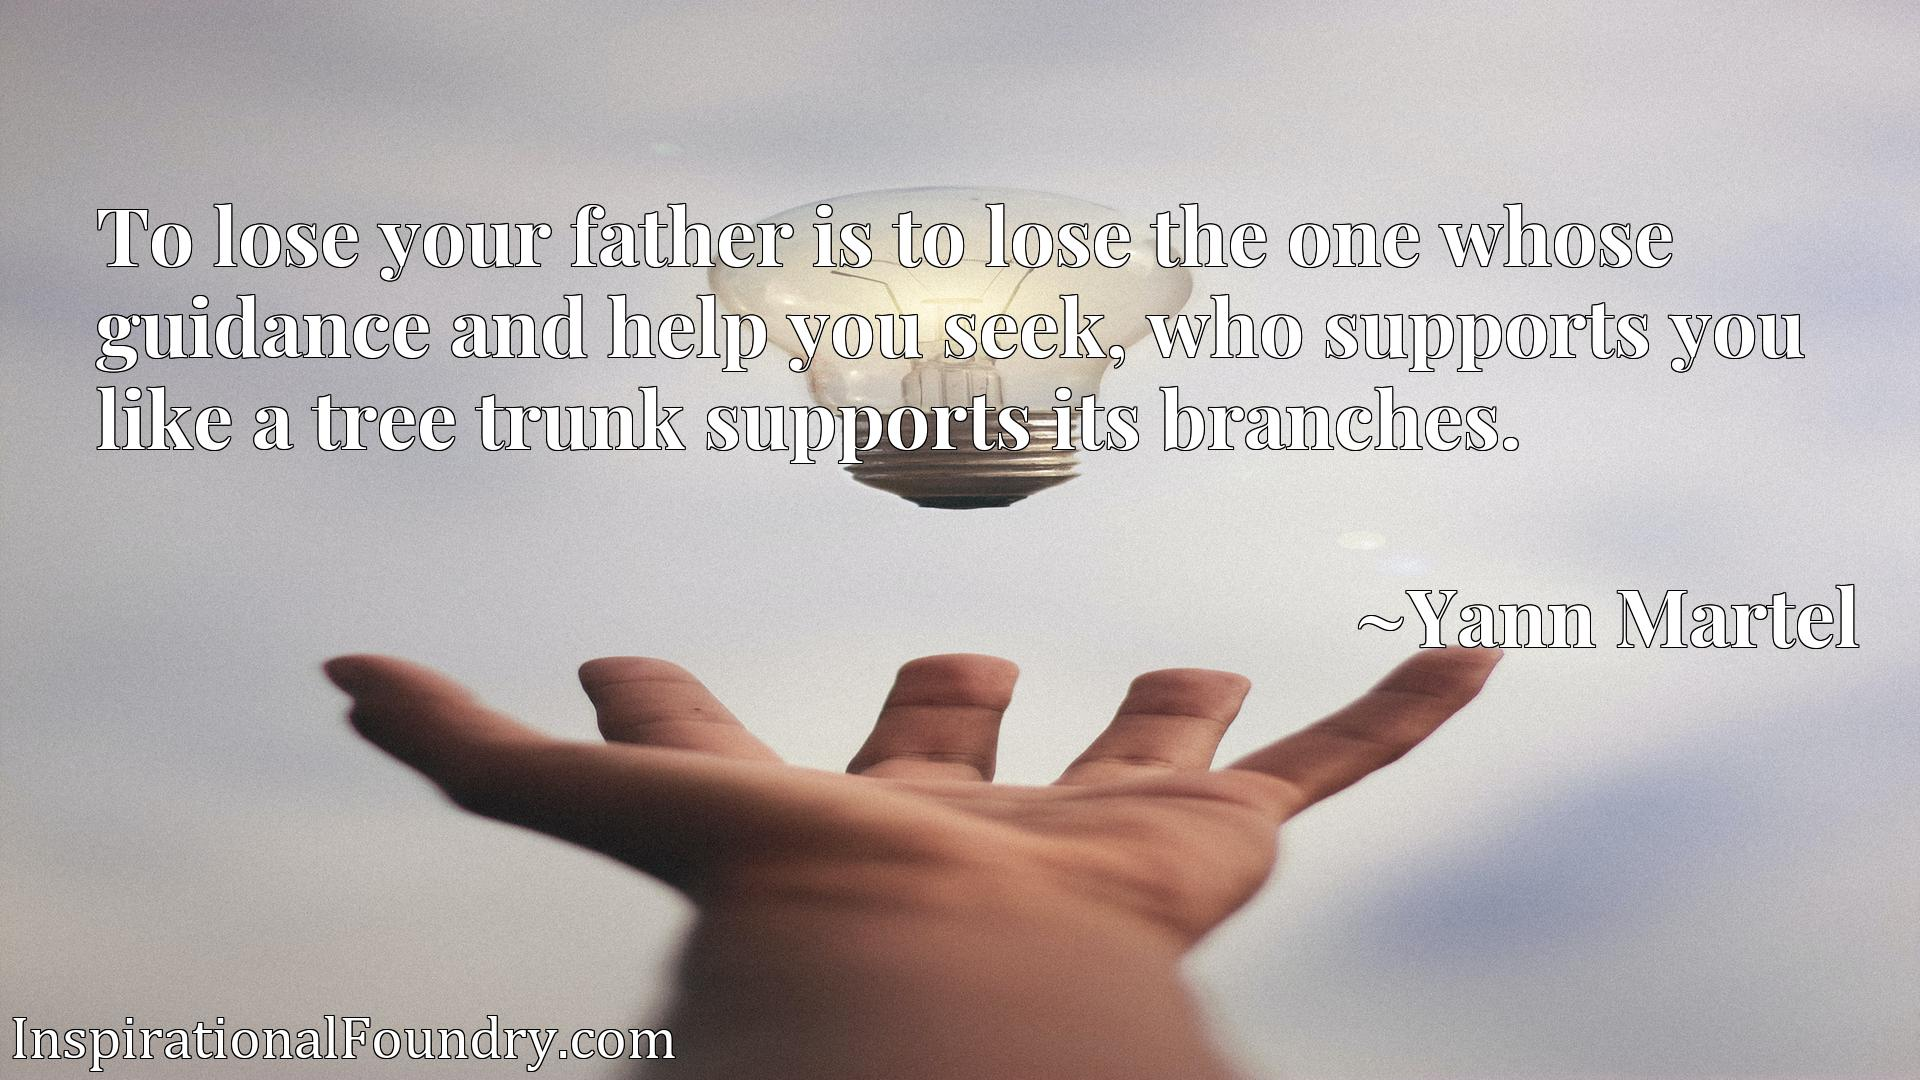 To lose your father is to lose the one whose guidance and help you seek, who supports you like a tree trunk supports its branches.